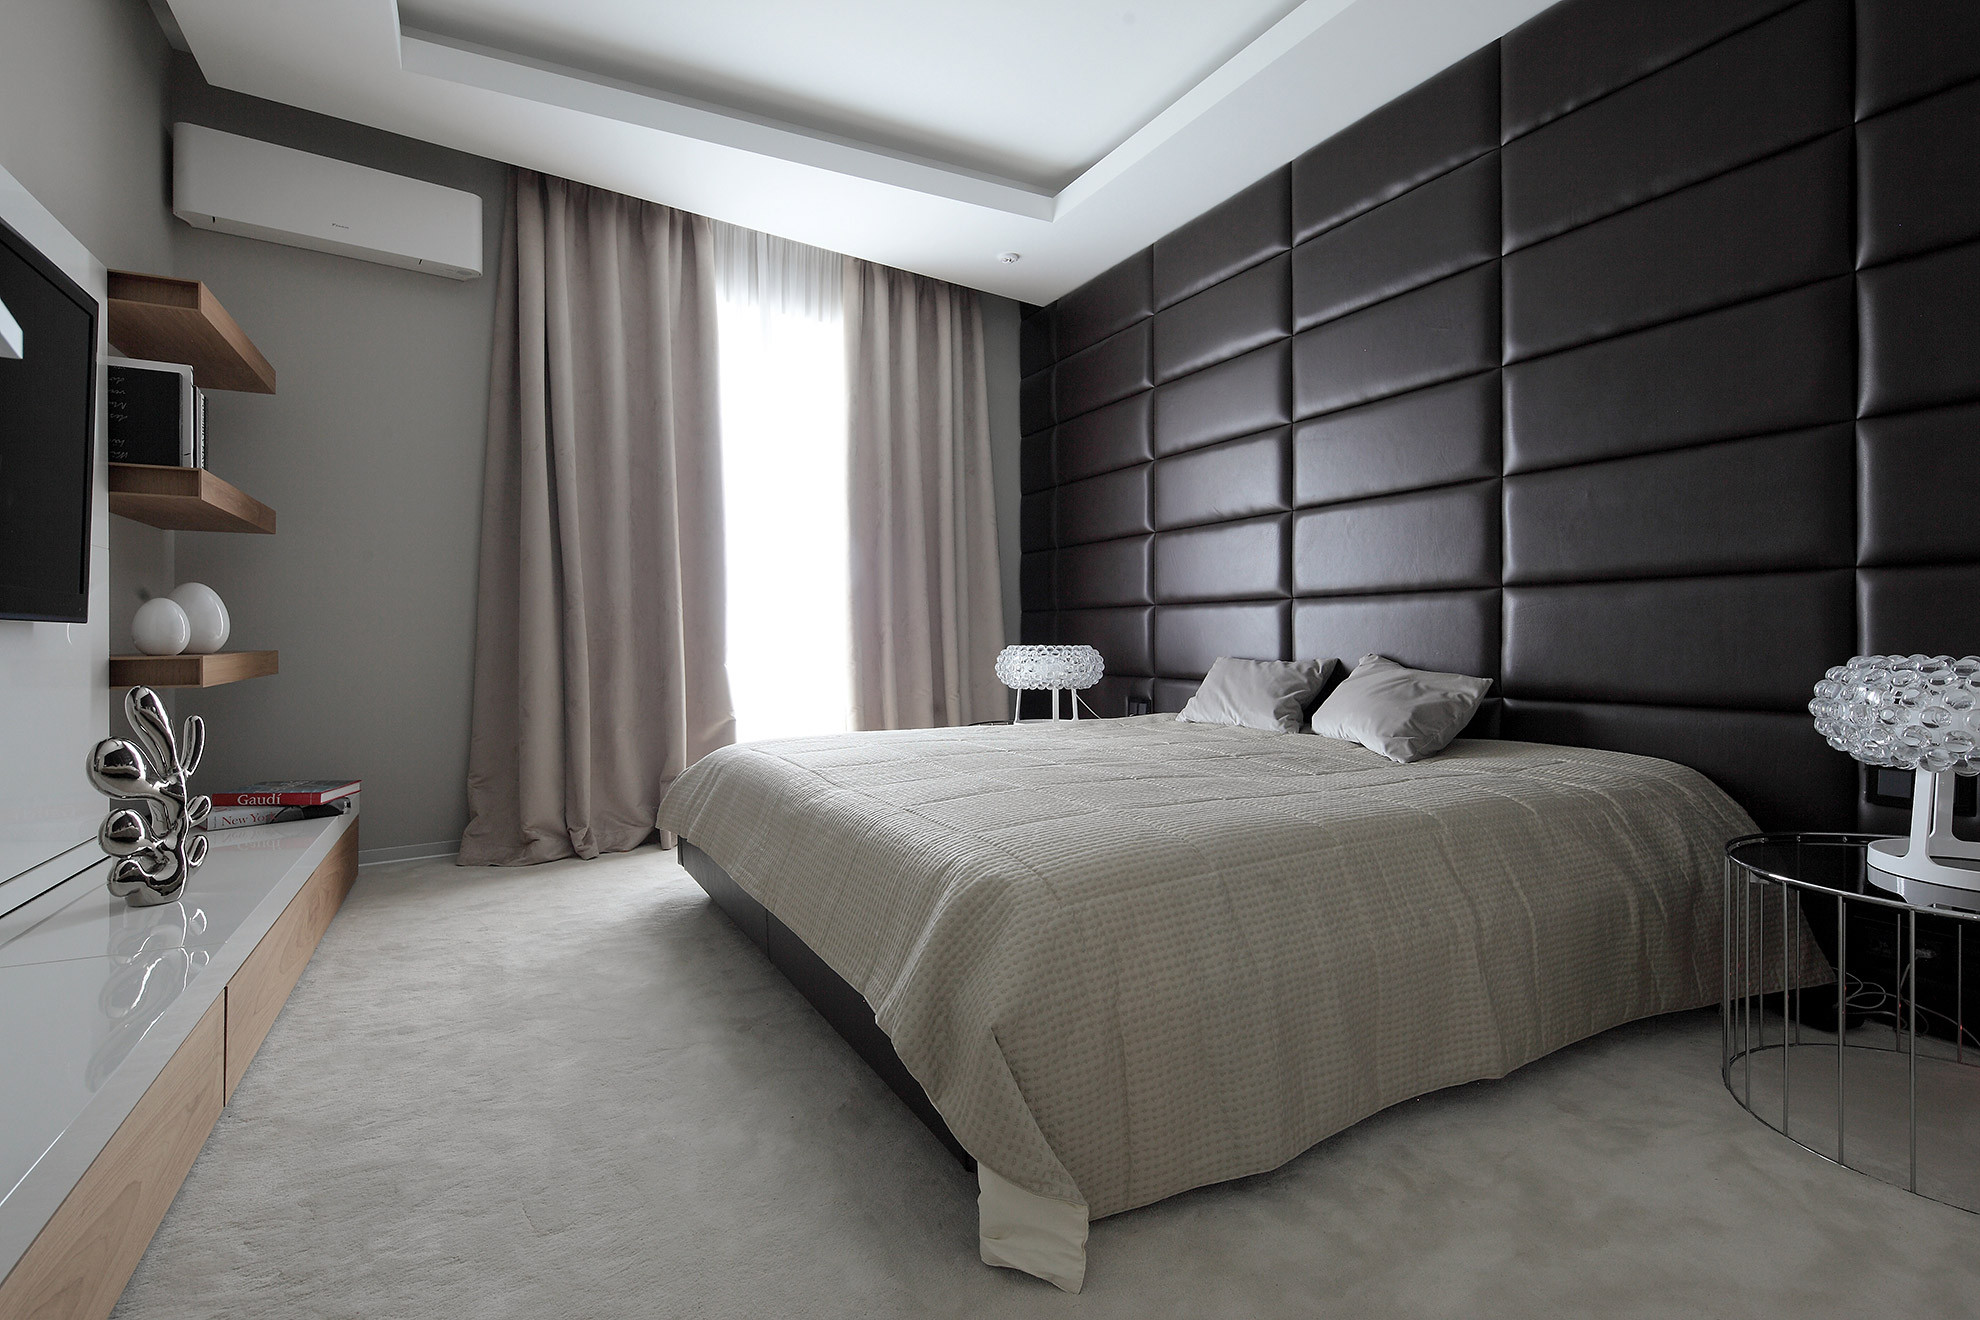 Wall Pictures For Bedroom  Non Traditional Wall Décor Ideas to Make a Bold Statement